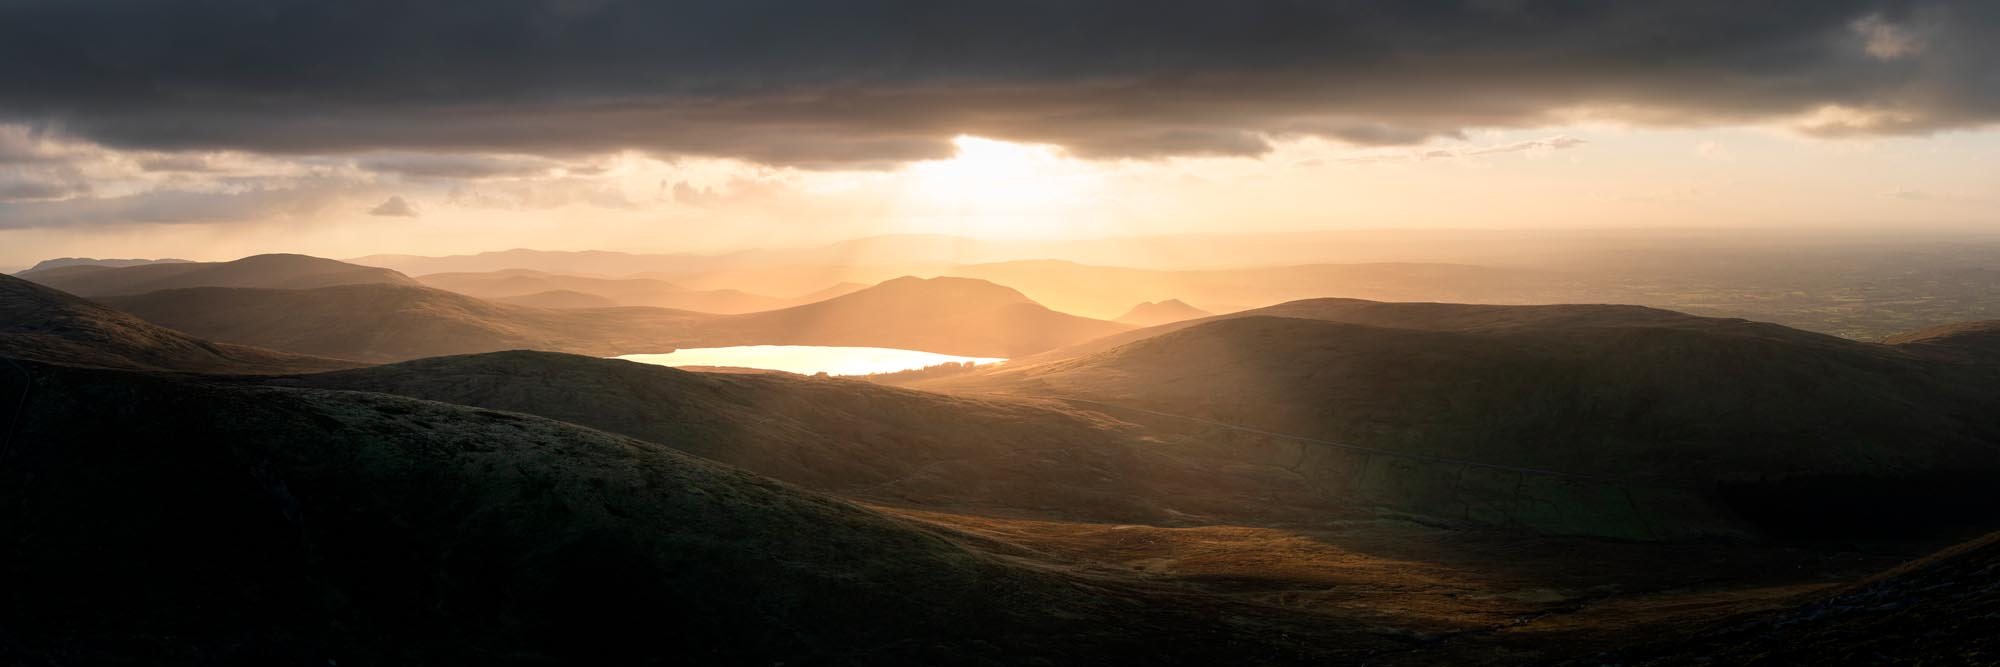 Mourne Mountains at sunset